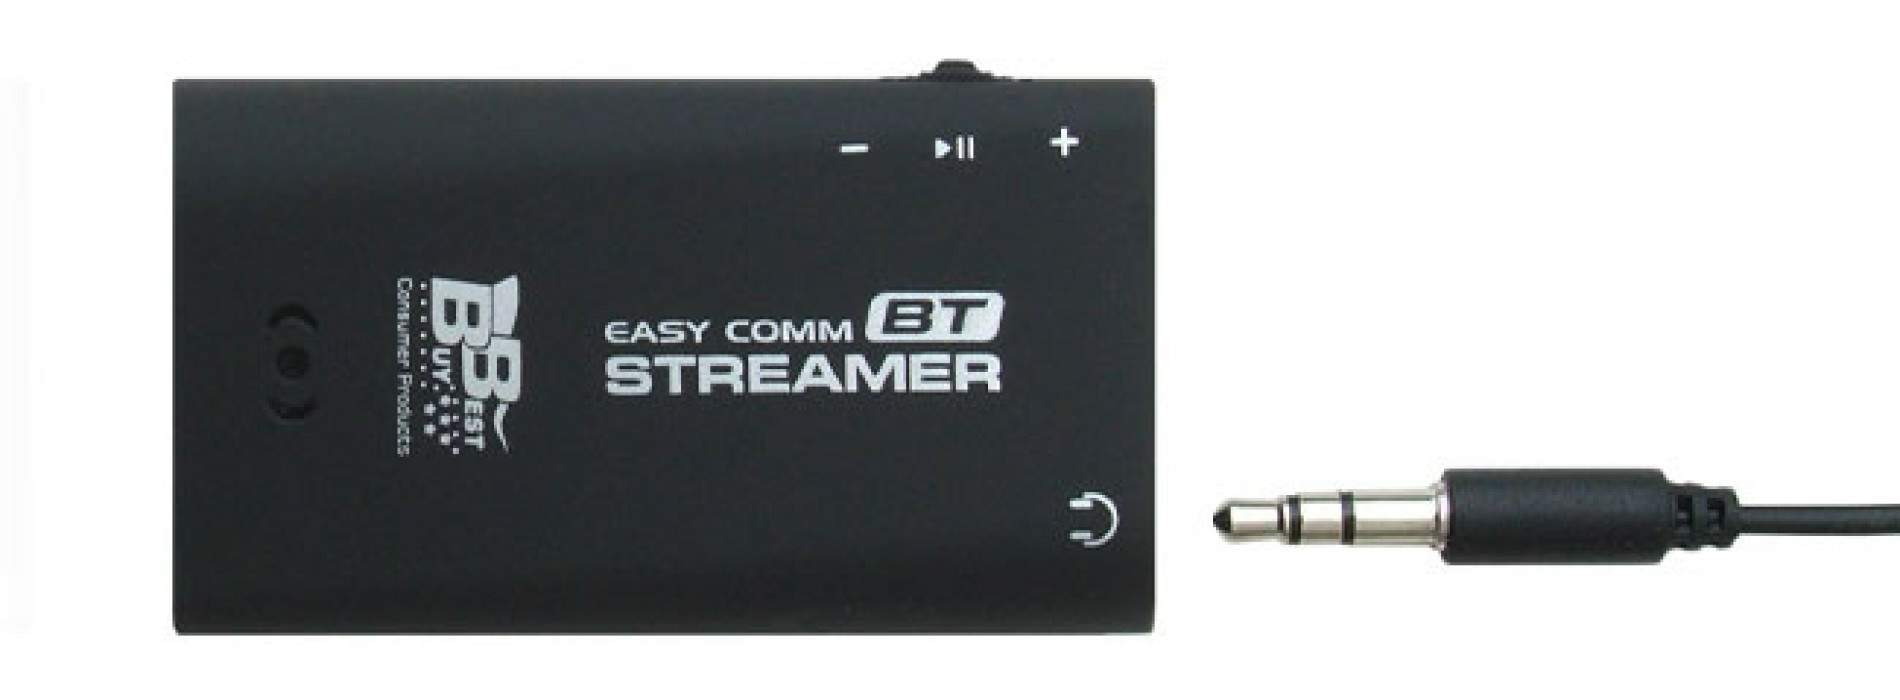 Easy Comm BT Streamer: Pon Bluetooth a tu equipo de música